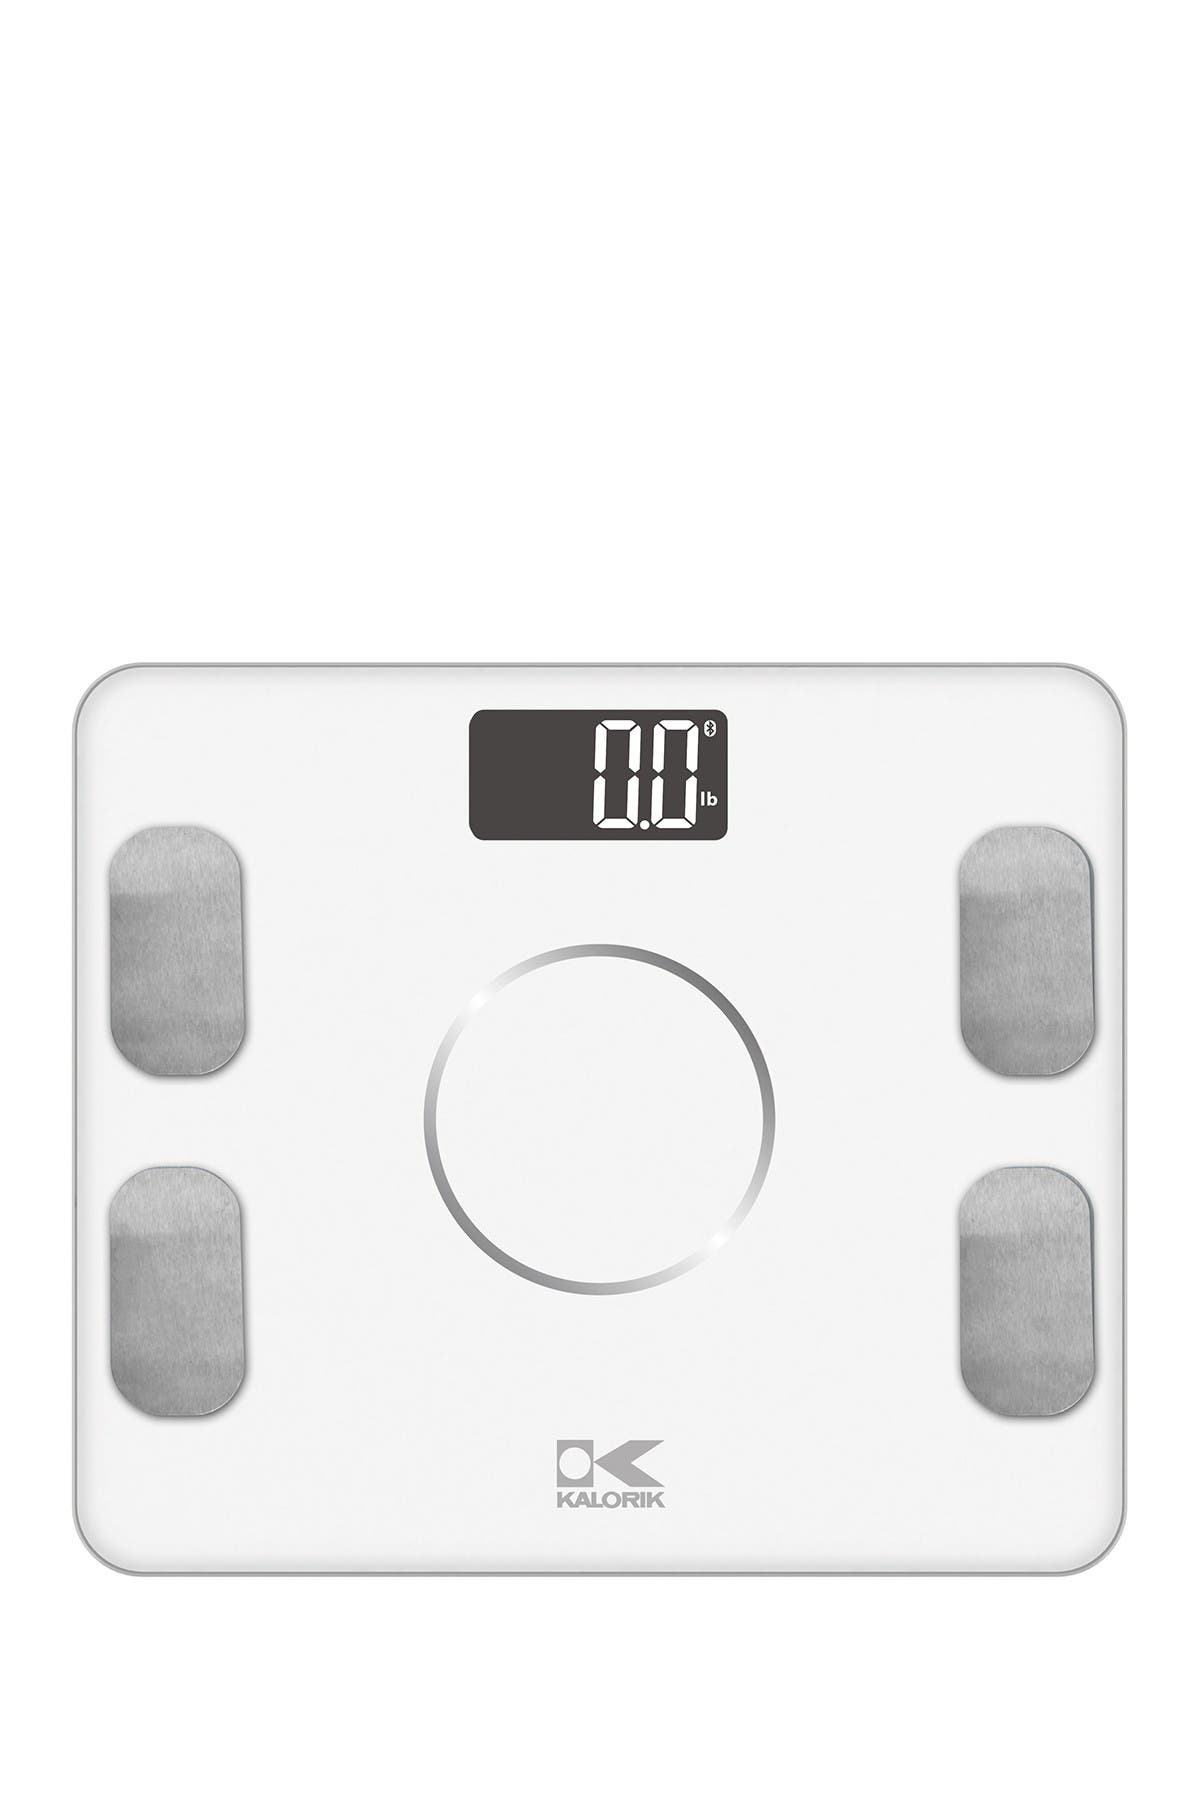 Image of Kalorik Bluetooth White Electronic Body Fat Scale with Body Analysis